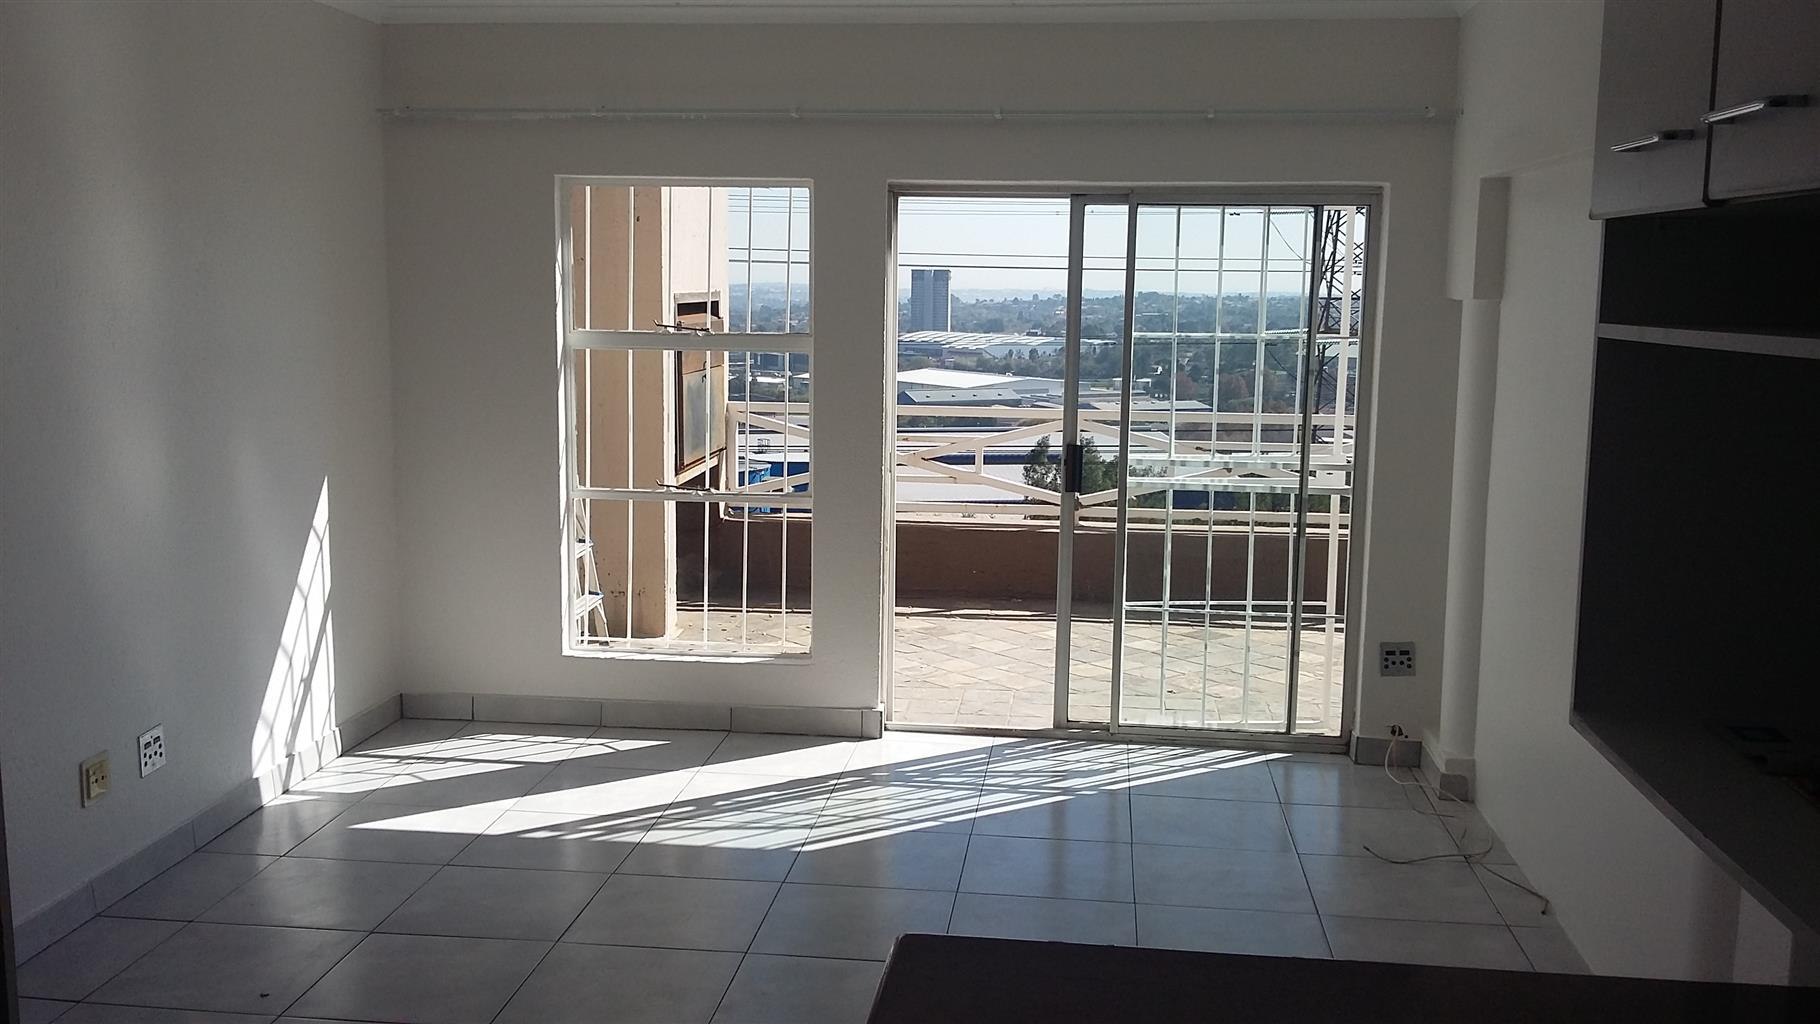 3 Bed Apart. with amazing views in Sunnyrock.